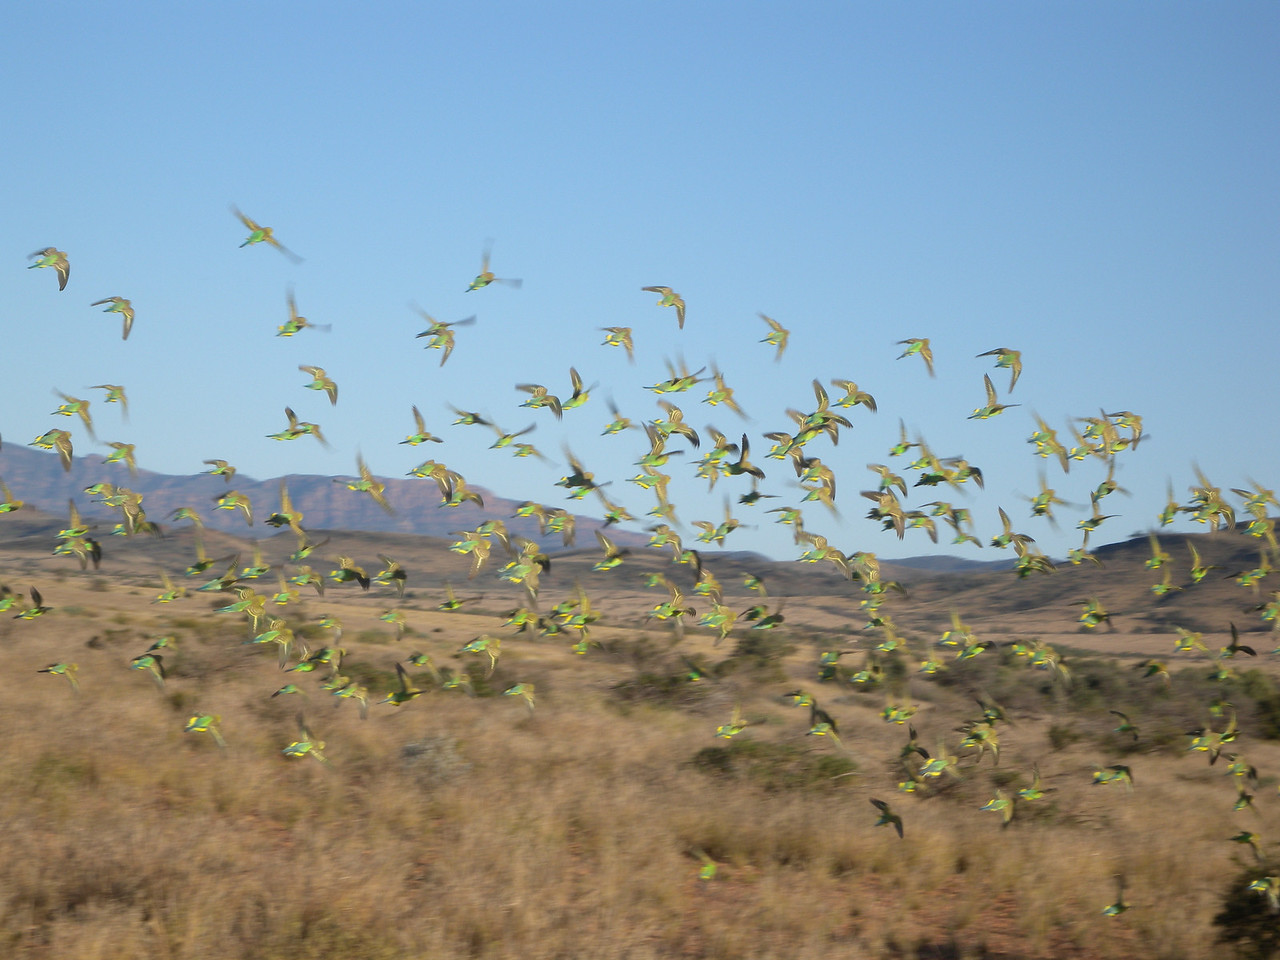 A blur of Budgerigars